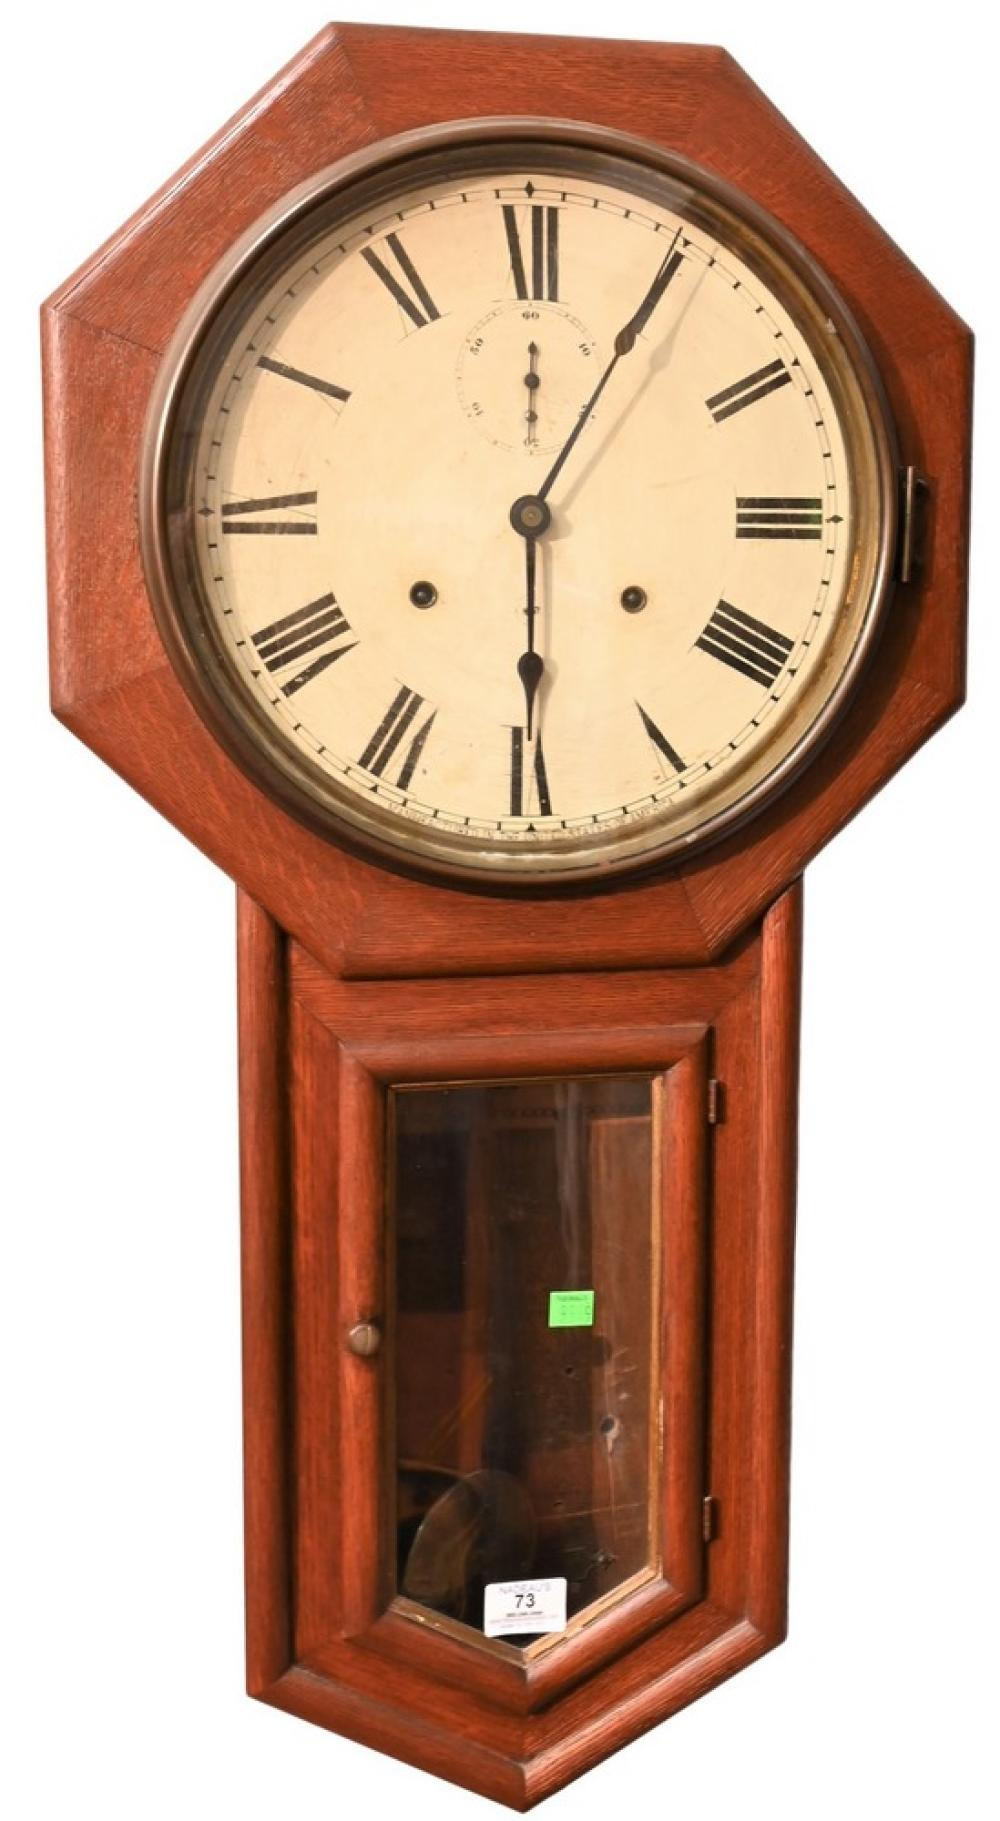 Seth Thomas Schoolhouse Regulator Wall Clock,having oak case with thirty day movement painted metal dial and second hand dial,orig...